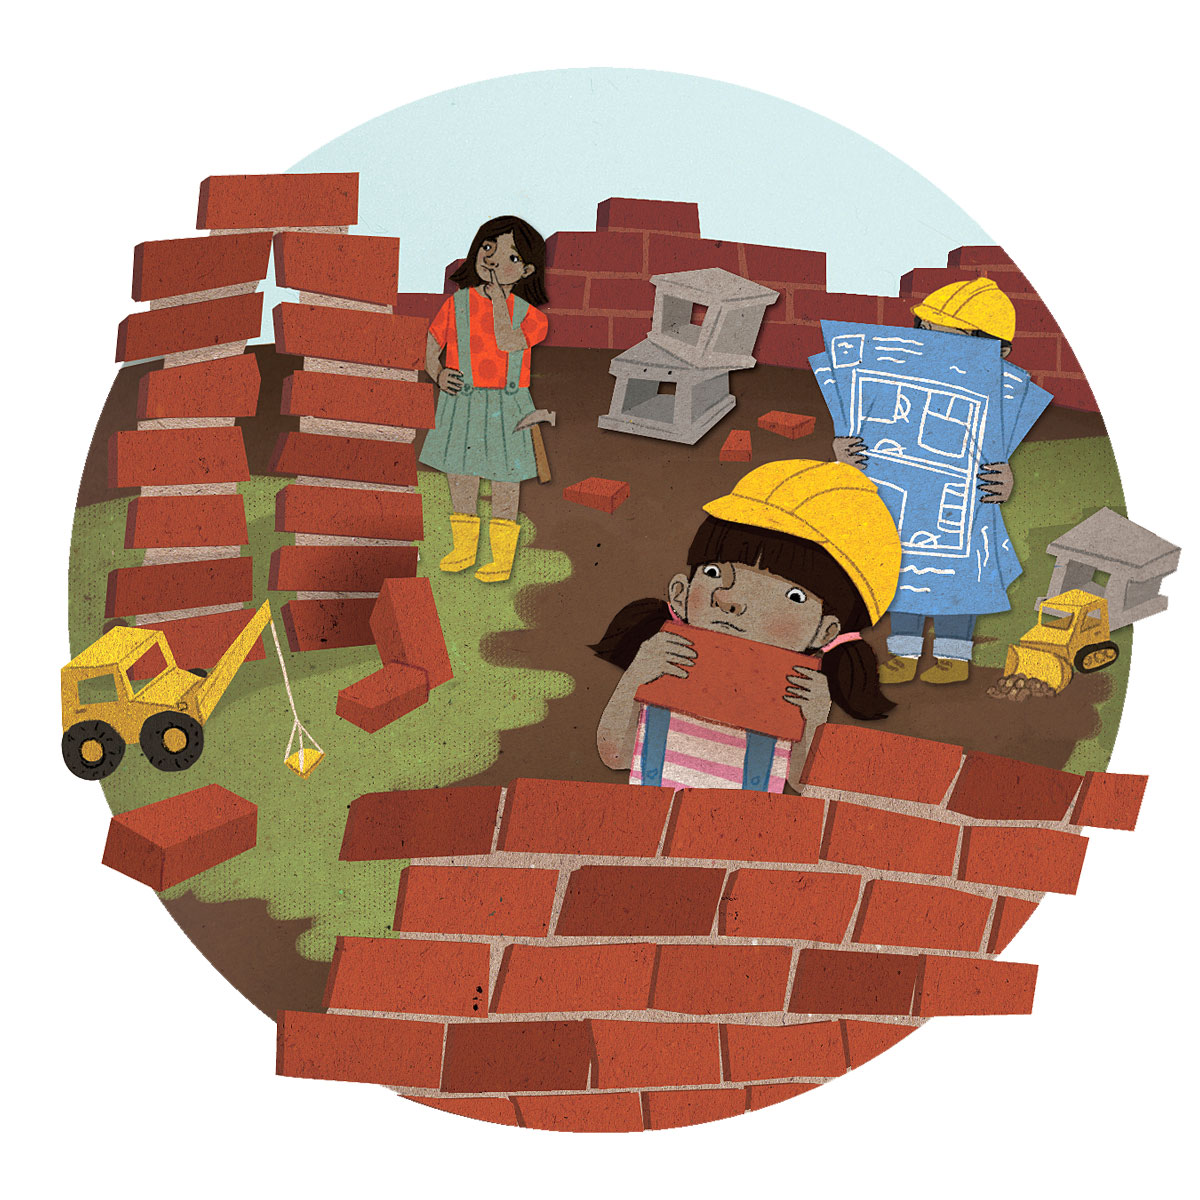 What Sticks About Play and Bricks